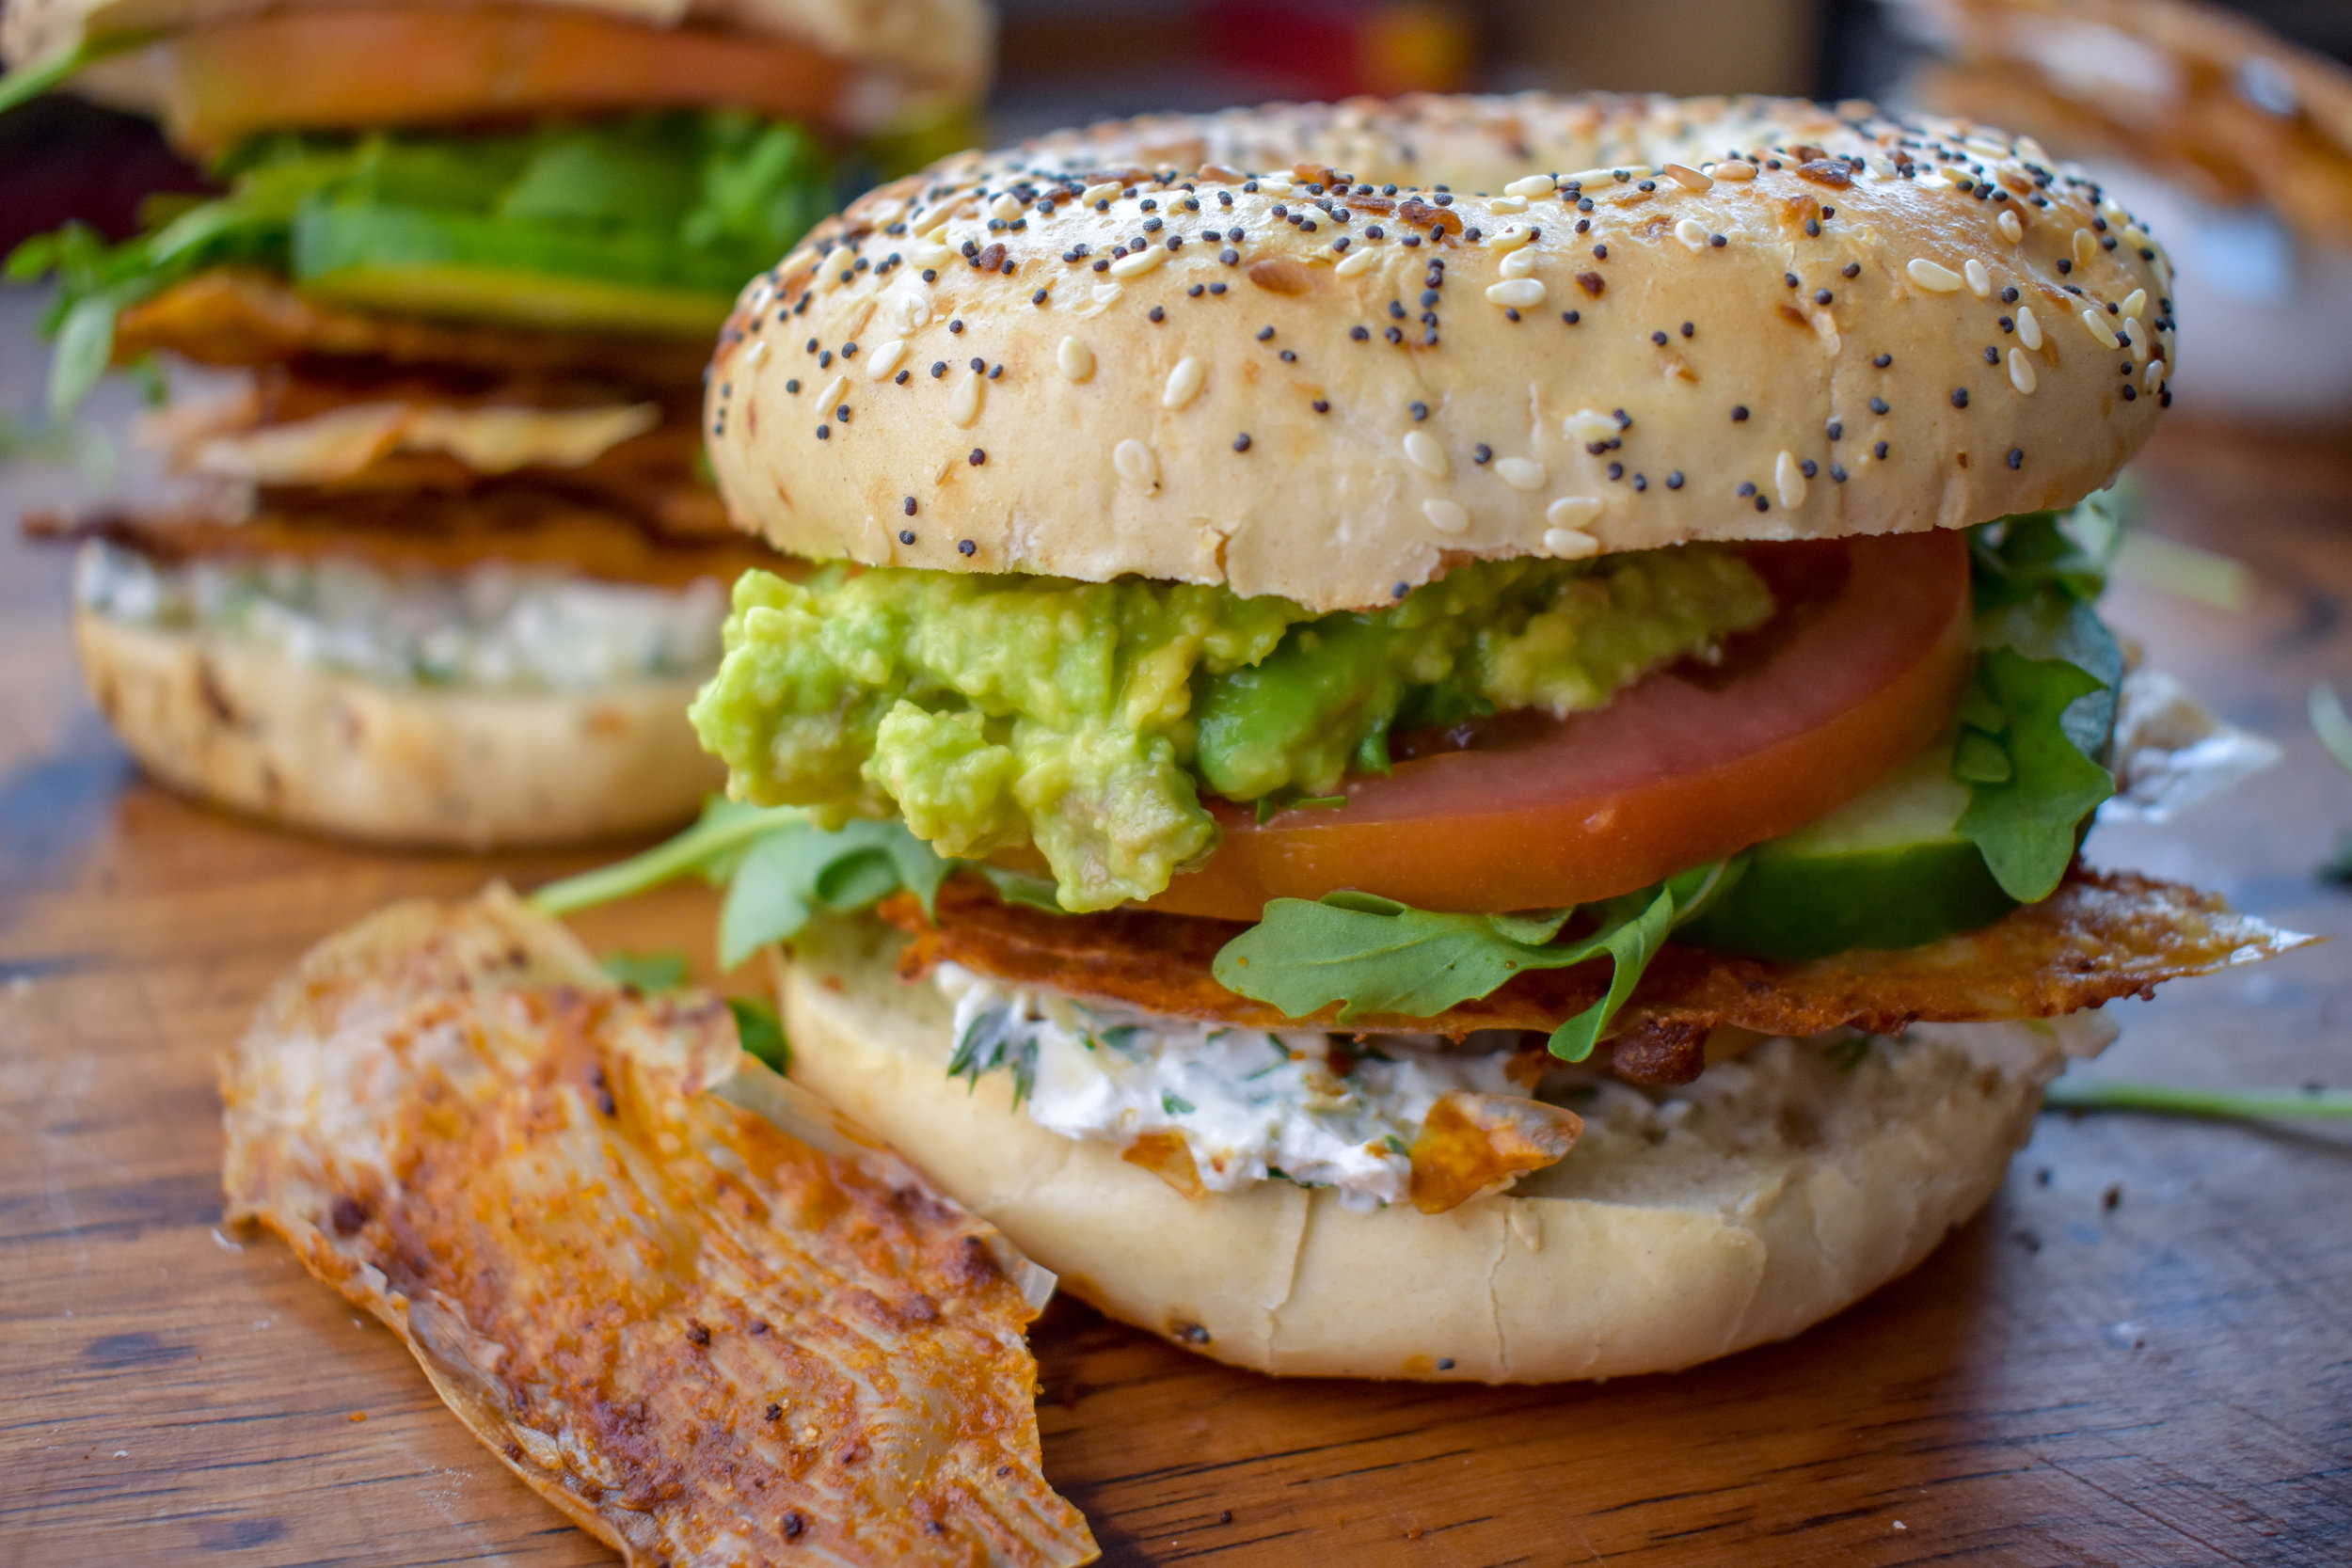 9. To construct, spread cream cheese on the bottom of the bagel. Stack on 4-5 bacon pieces. Add veggies + avocado smash. Spread a bit more cream cheese on top of the bagel. Smash it together. Eat. Enjoy!